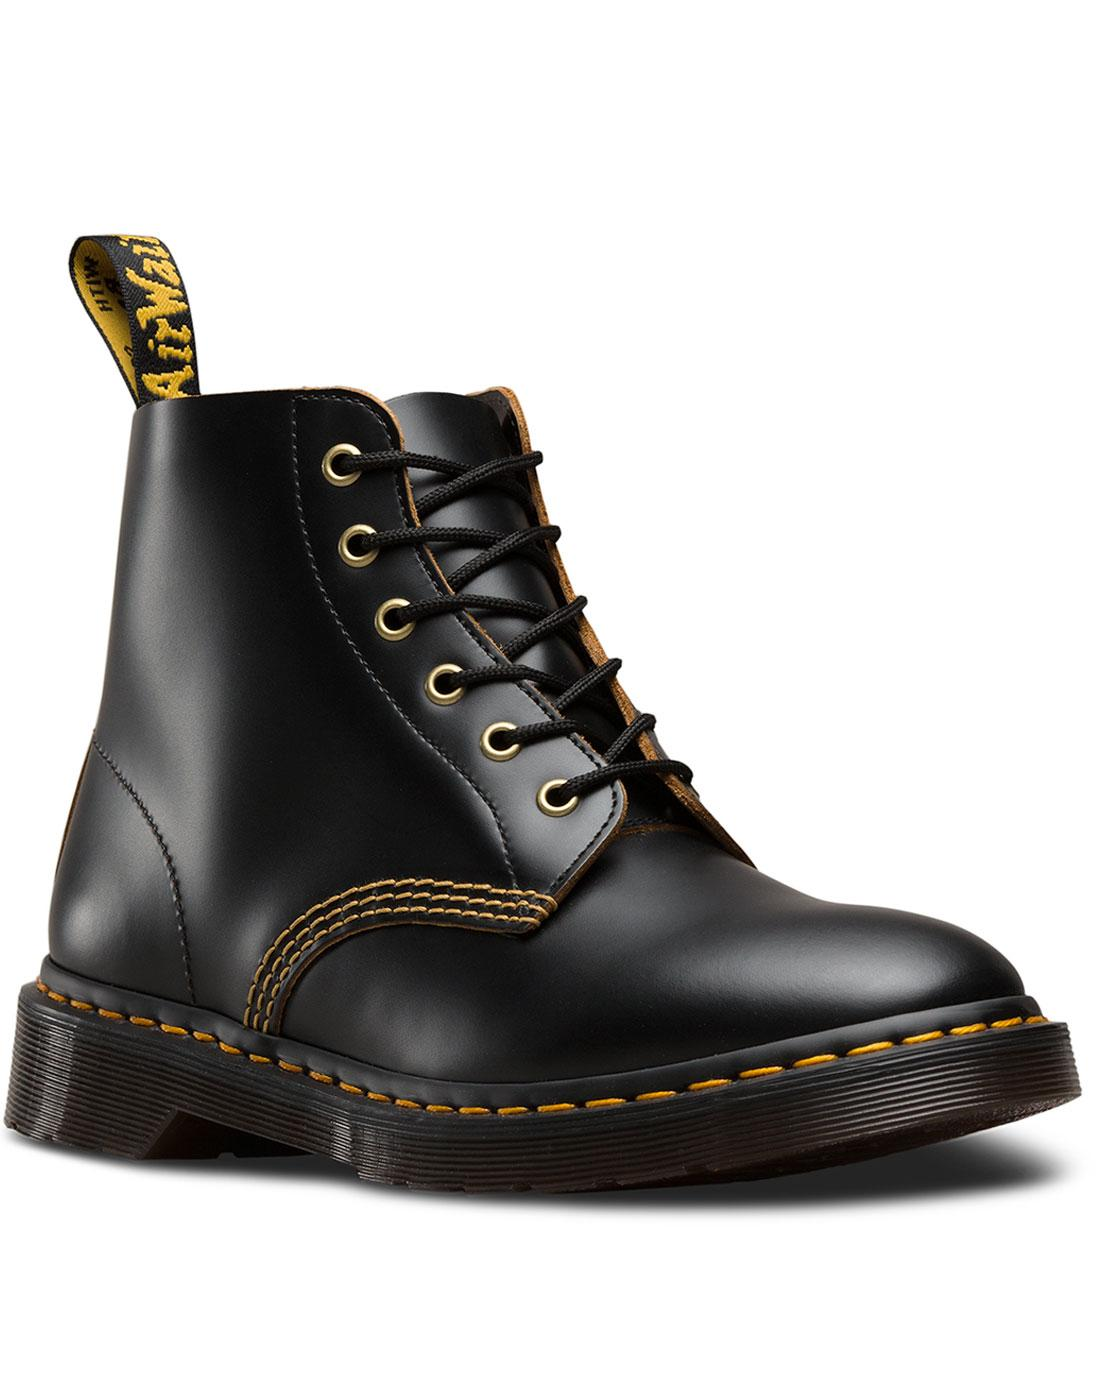 101 Archive DR MARTENS Mod 6 Eyelet Ankle Boots B